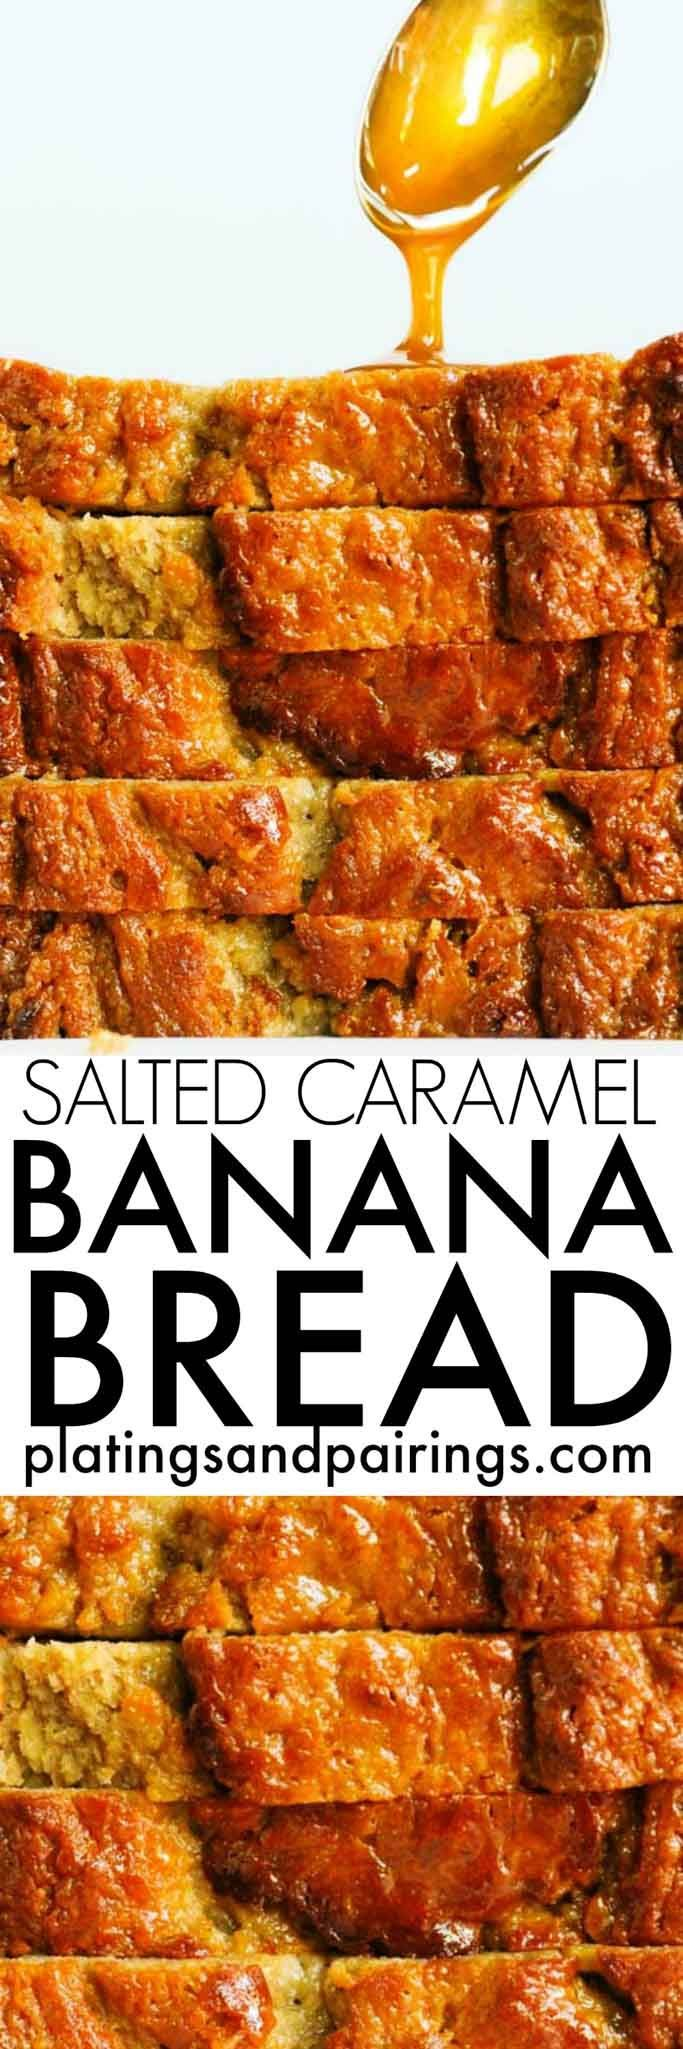 This Salted Caramel Banana Bread with Yogurt is flavorful, moist and not overly sweet - It's the perfect balance of flavors and easy to make at home!   platingsandpairings.com